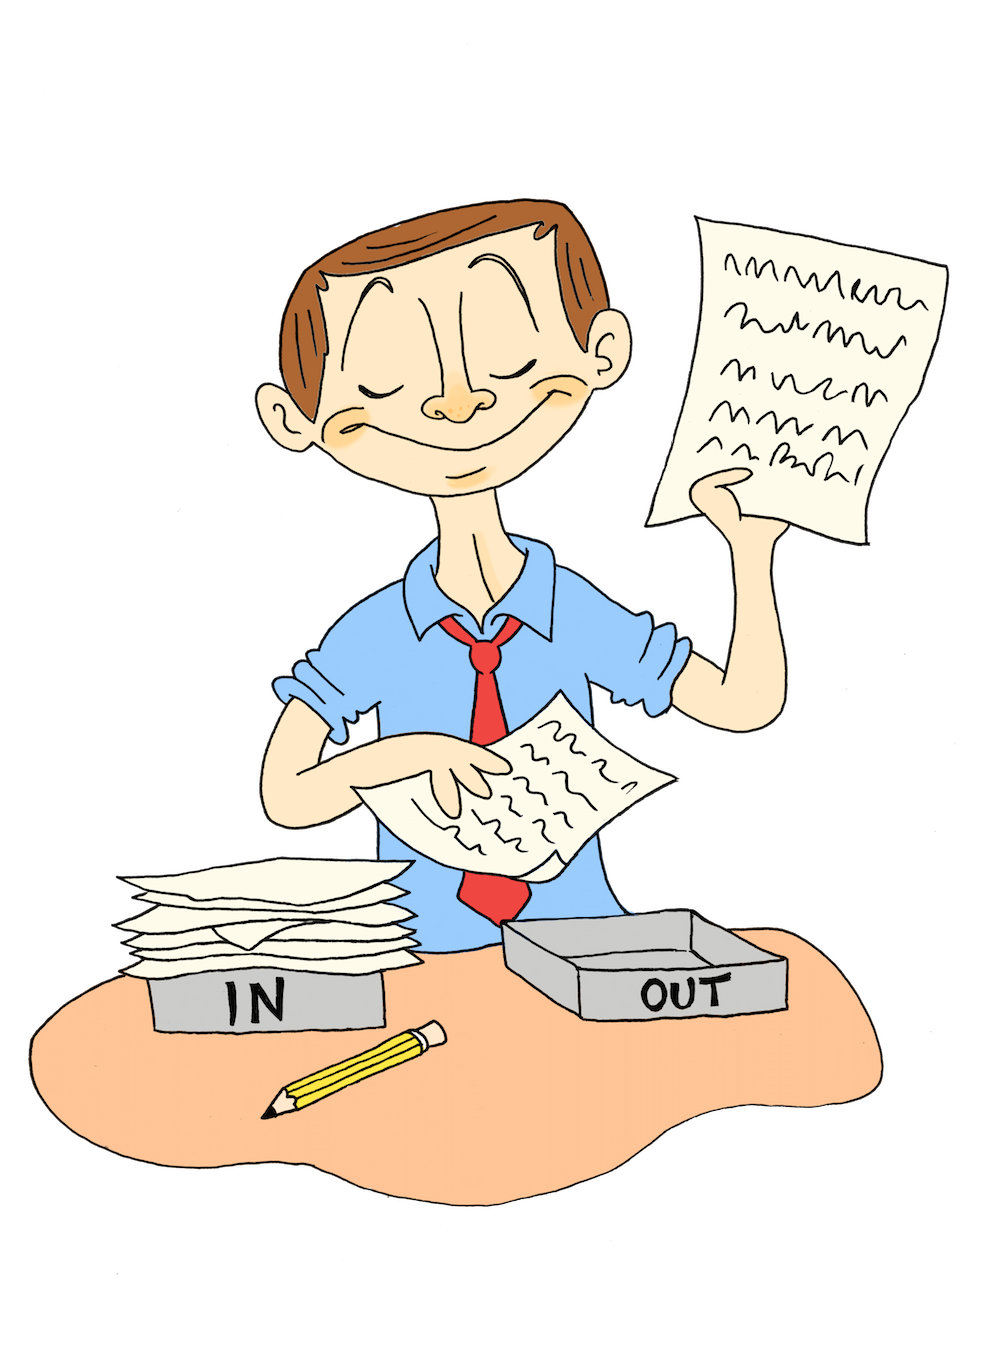 Working clipart office skill. Worker surrey choices want